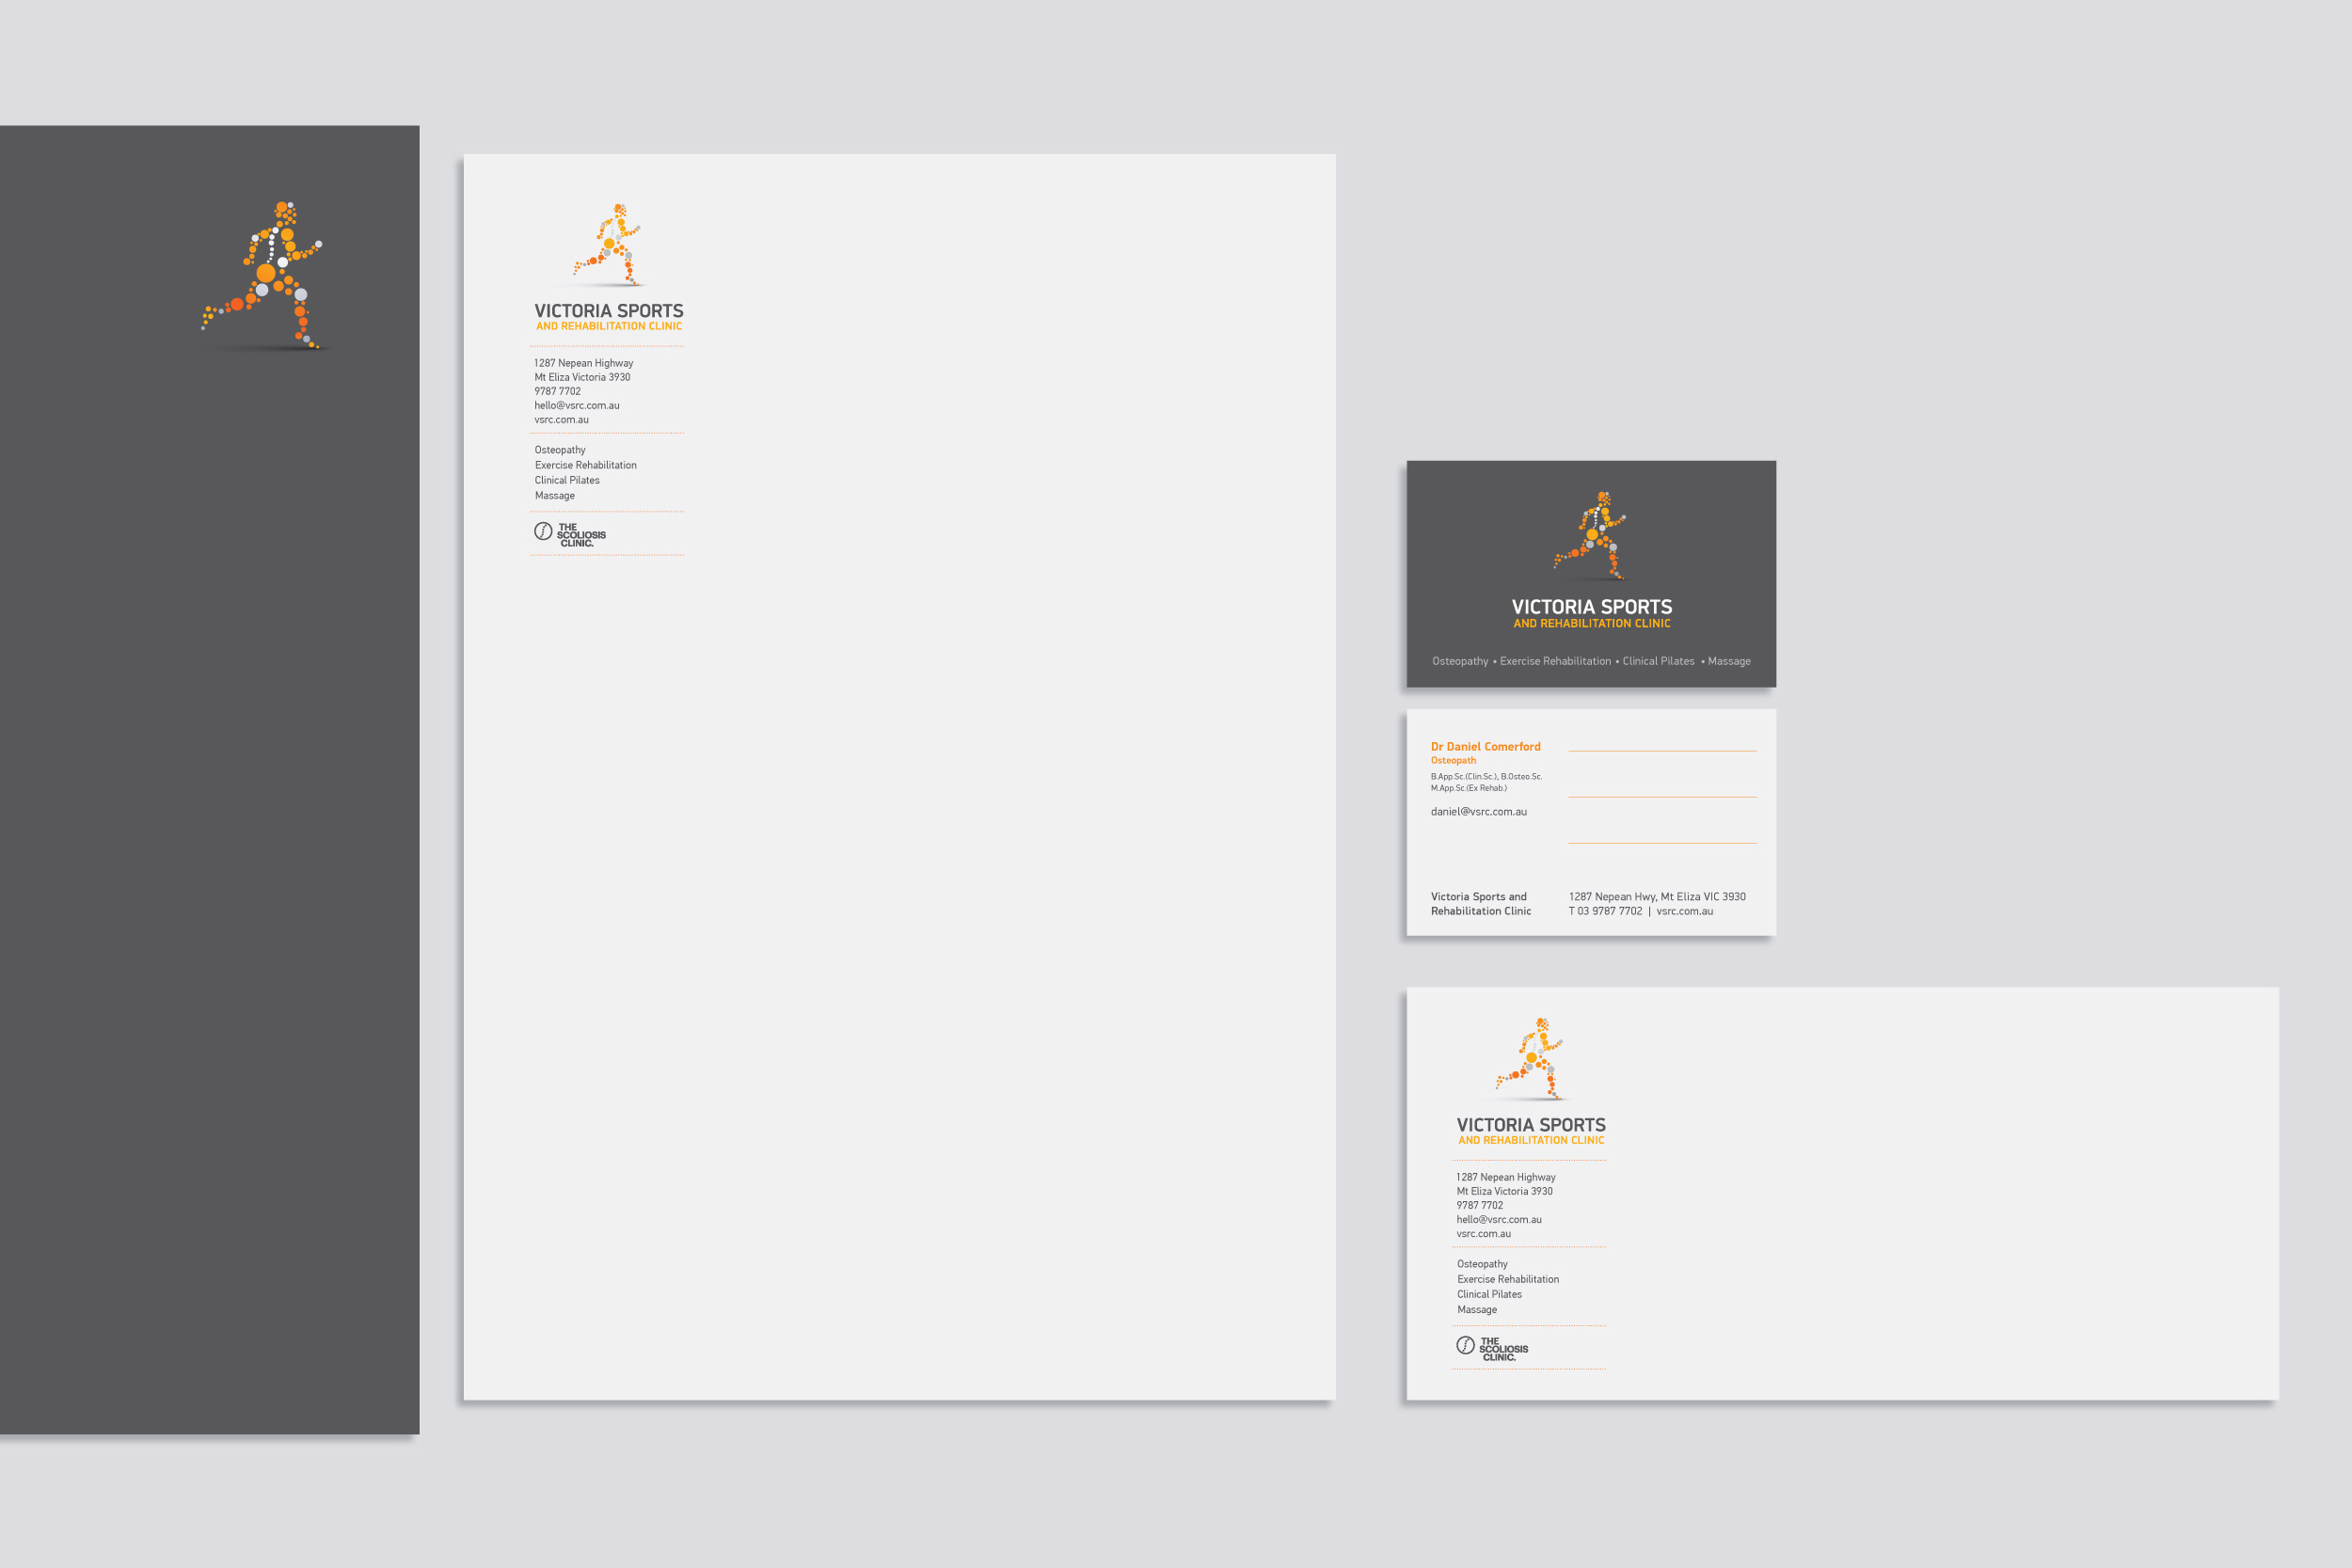 VSRC collateral design, created by south design